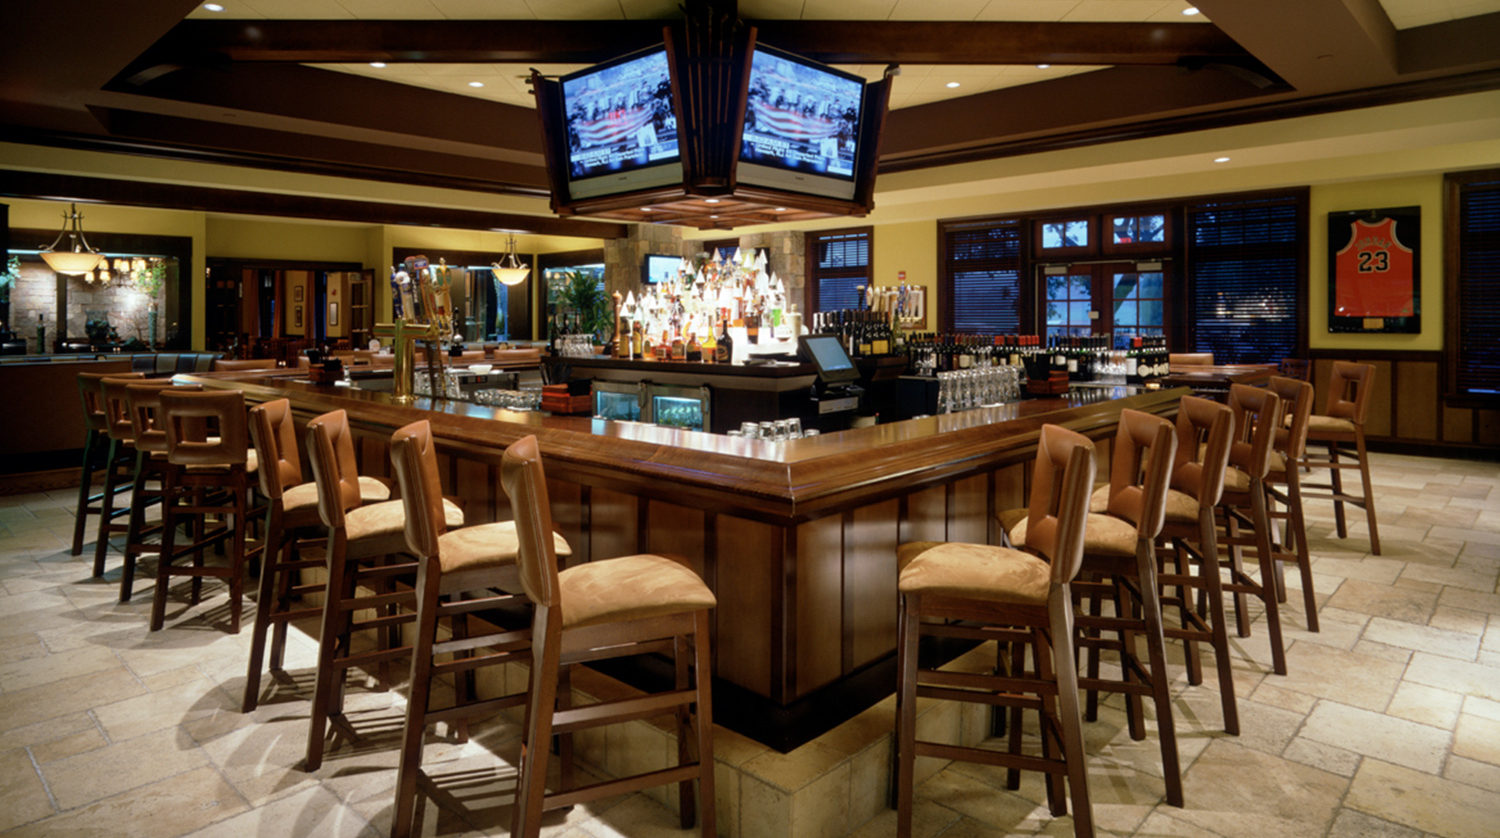 Wheaton Park District Arrowhead Golf Clubhouse bar